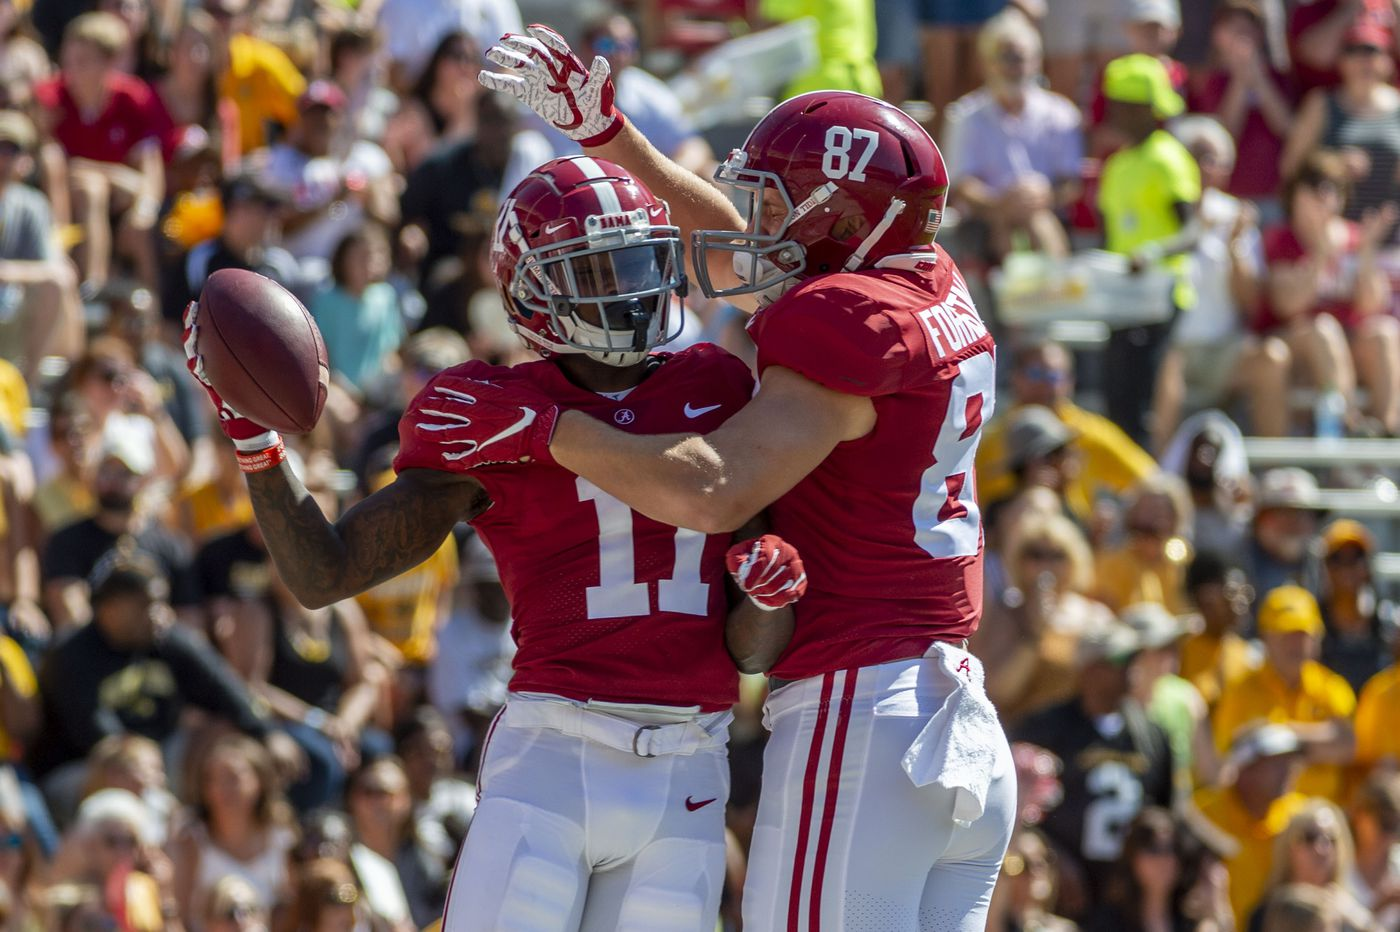 Eagles draft needs begin with wide receiver, but history demands they consider others in first round   David Murphy